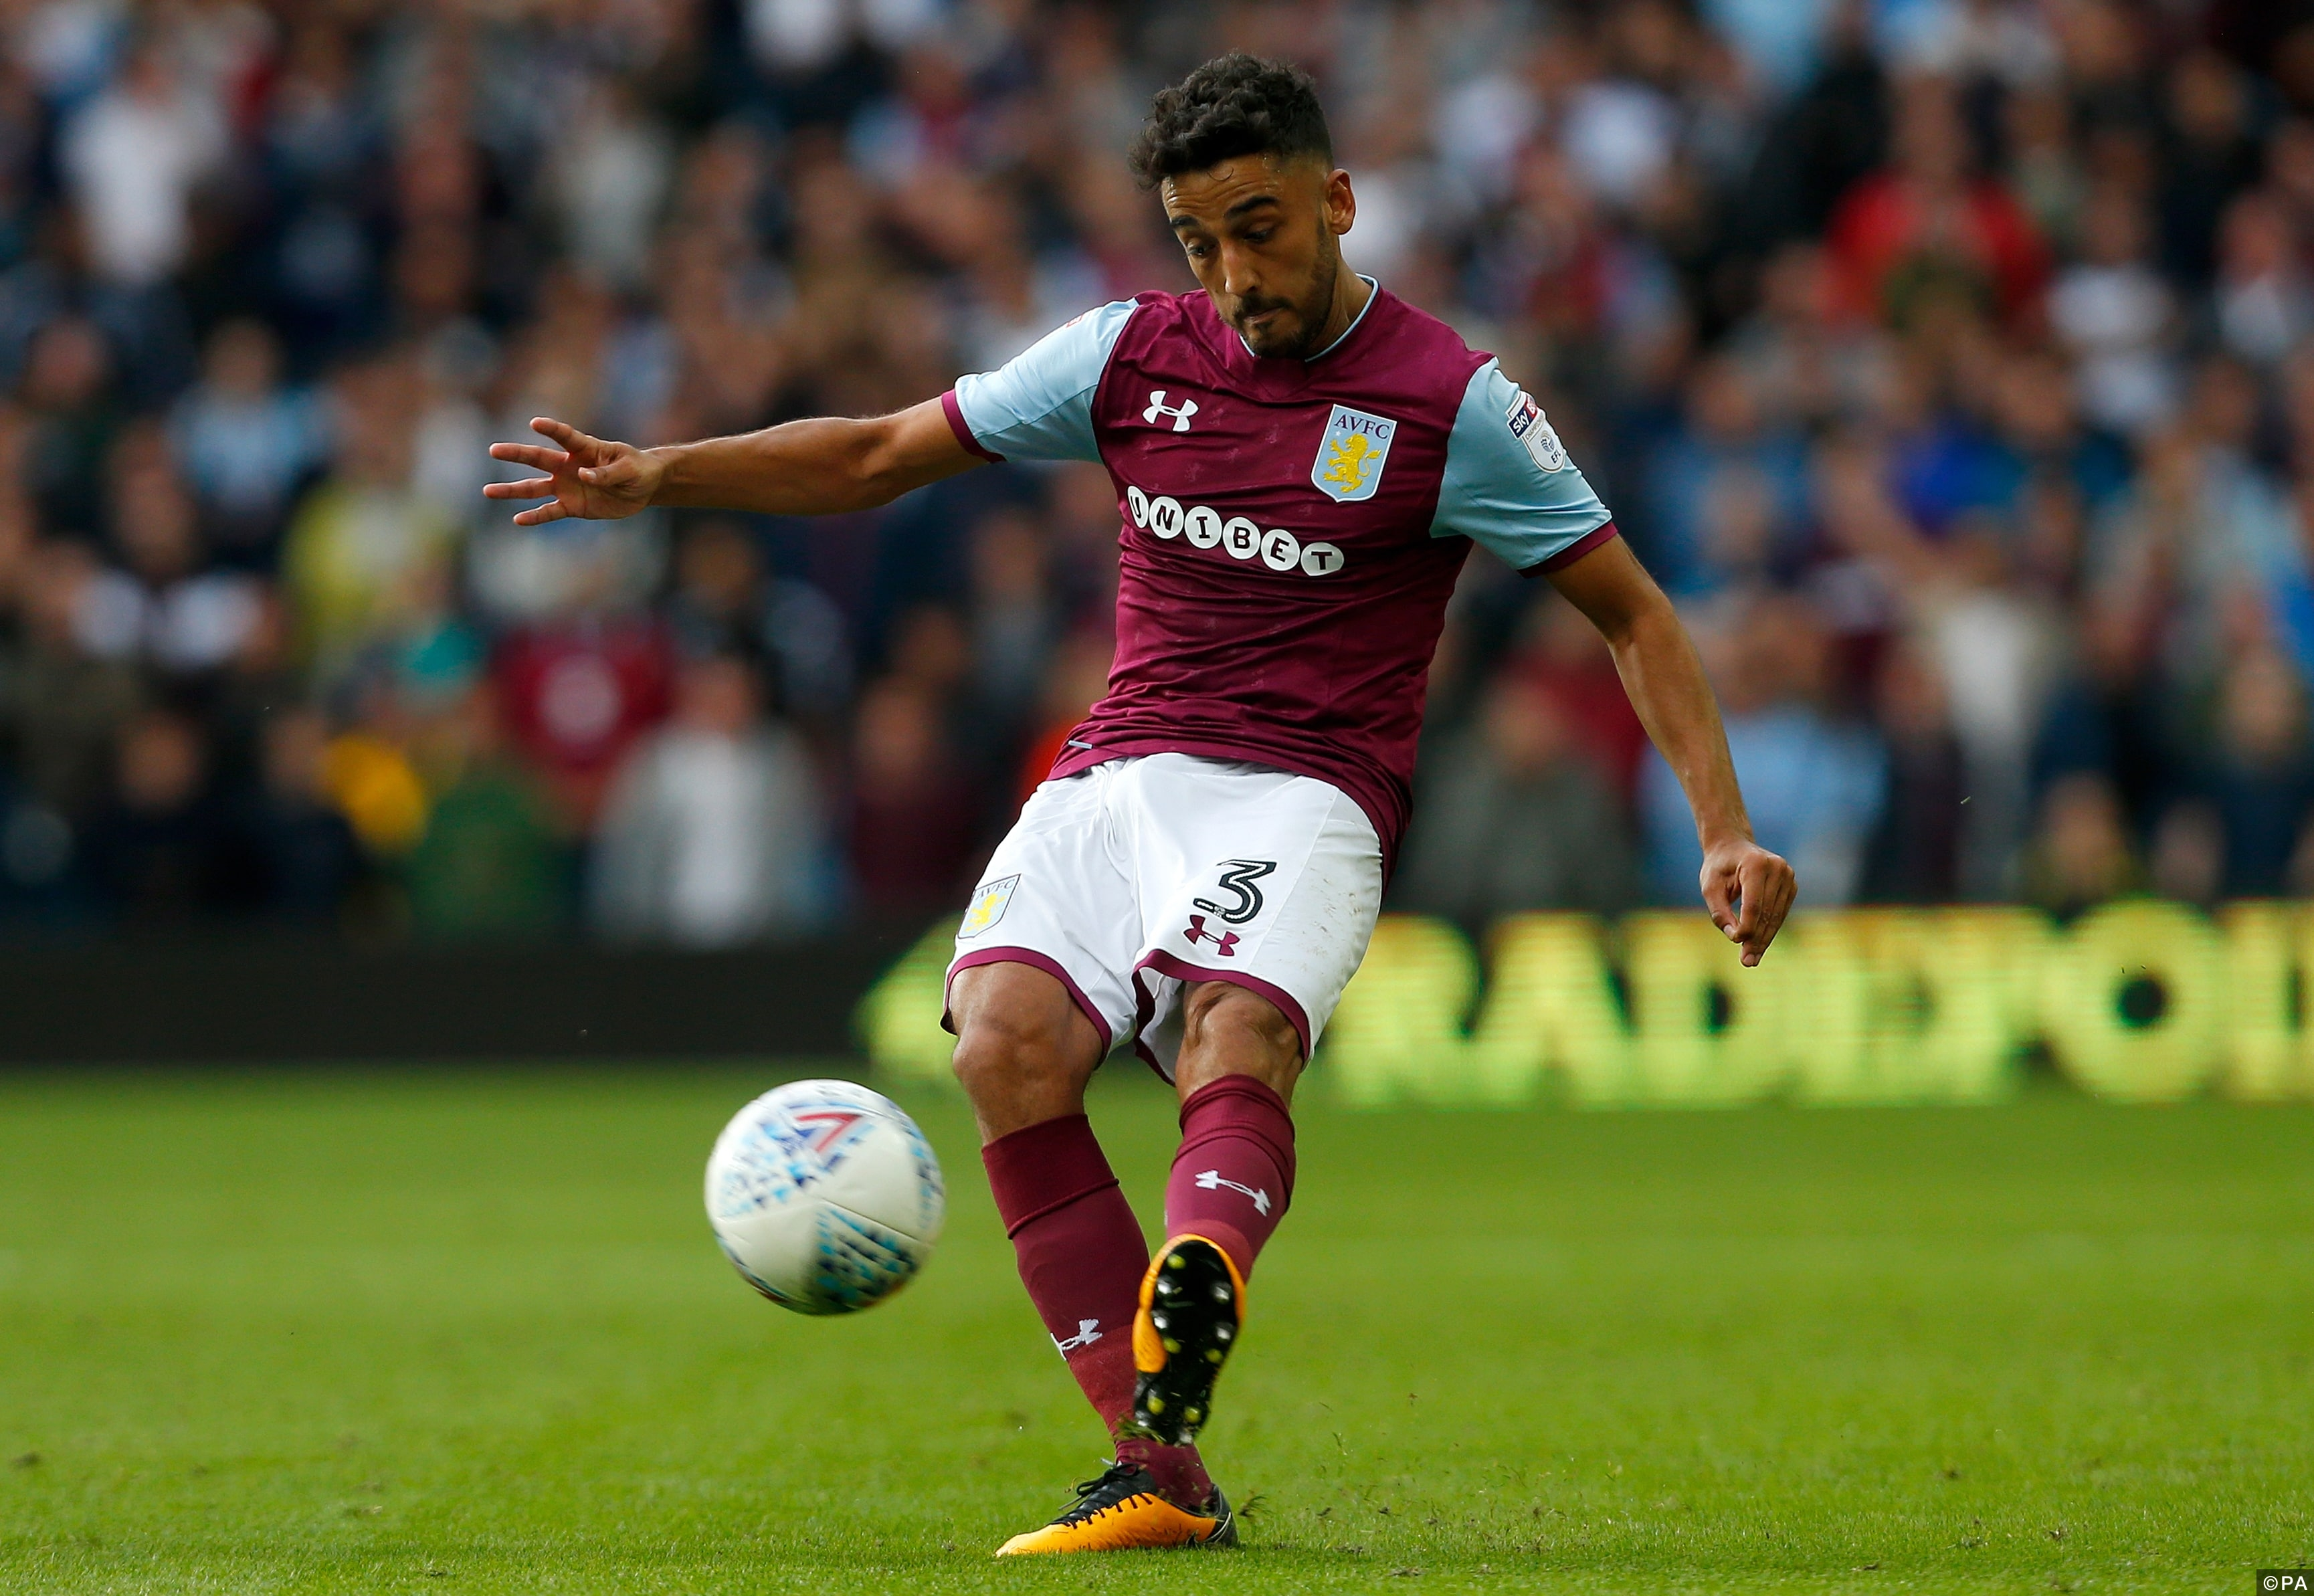 Nottingham Forest vs Aston Villa Predictions, Betting Tips and Match Previews